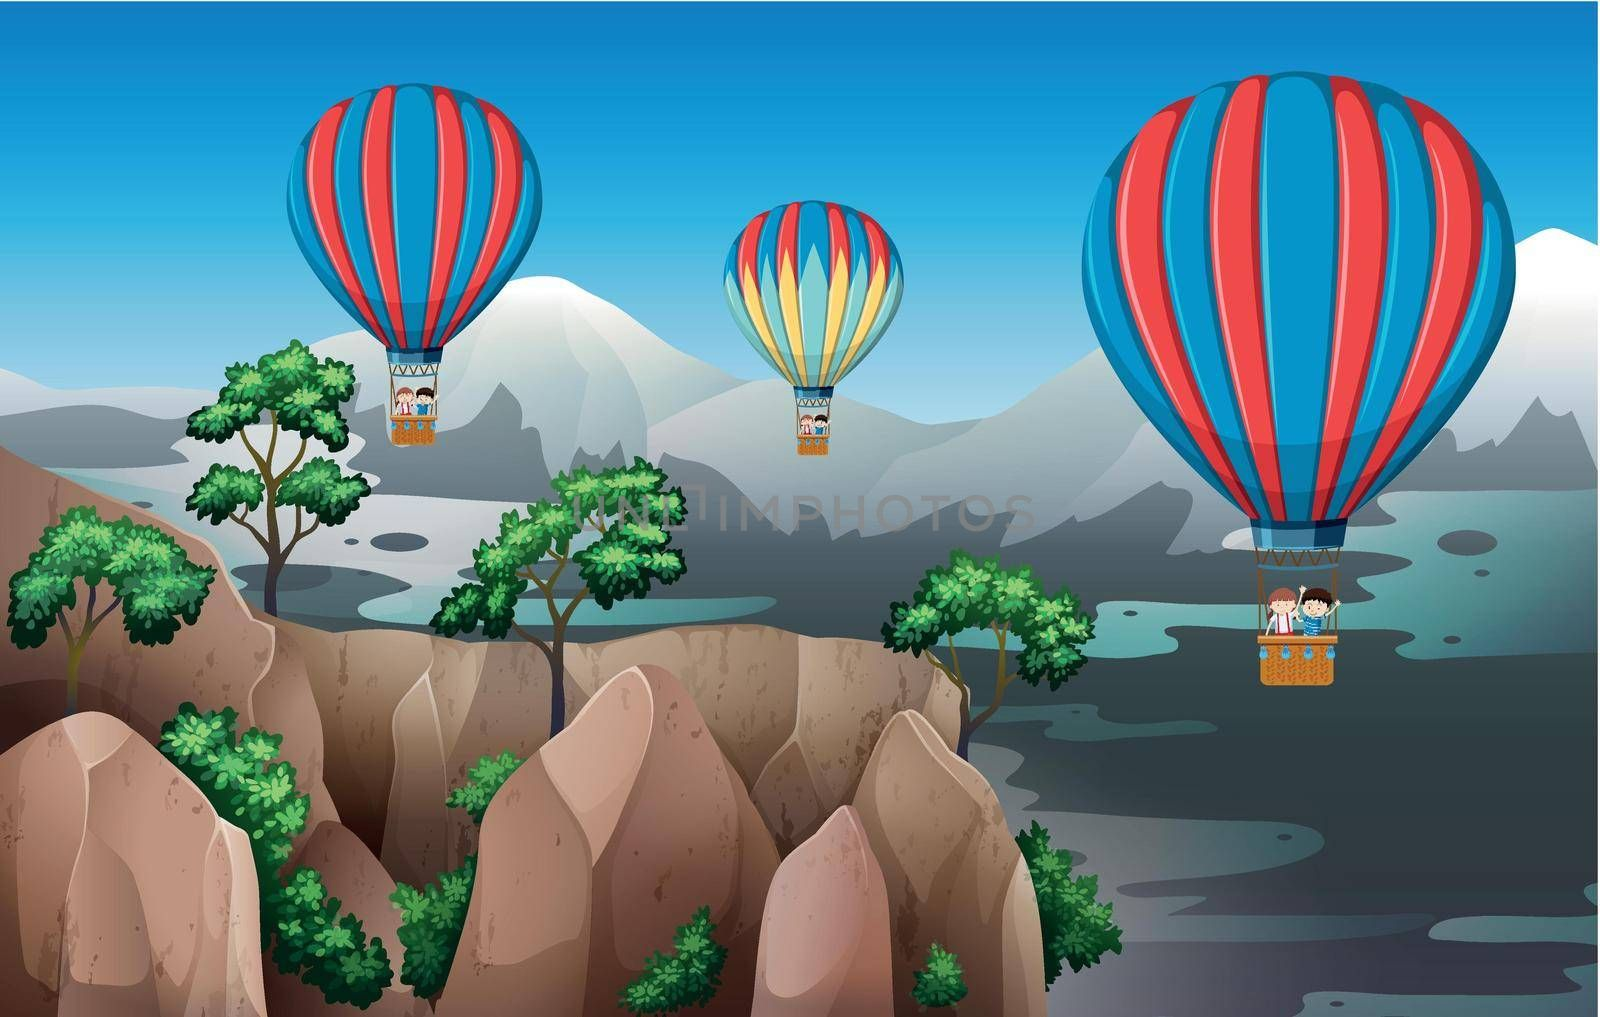 Travel with hot air balloon illustration